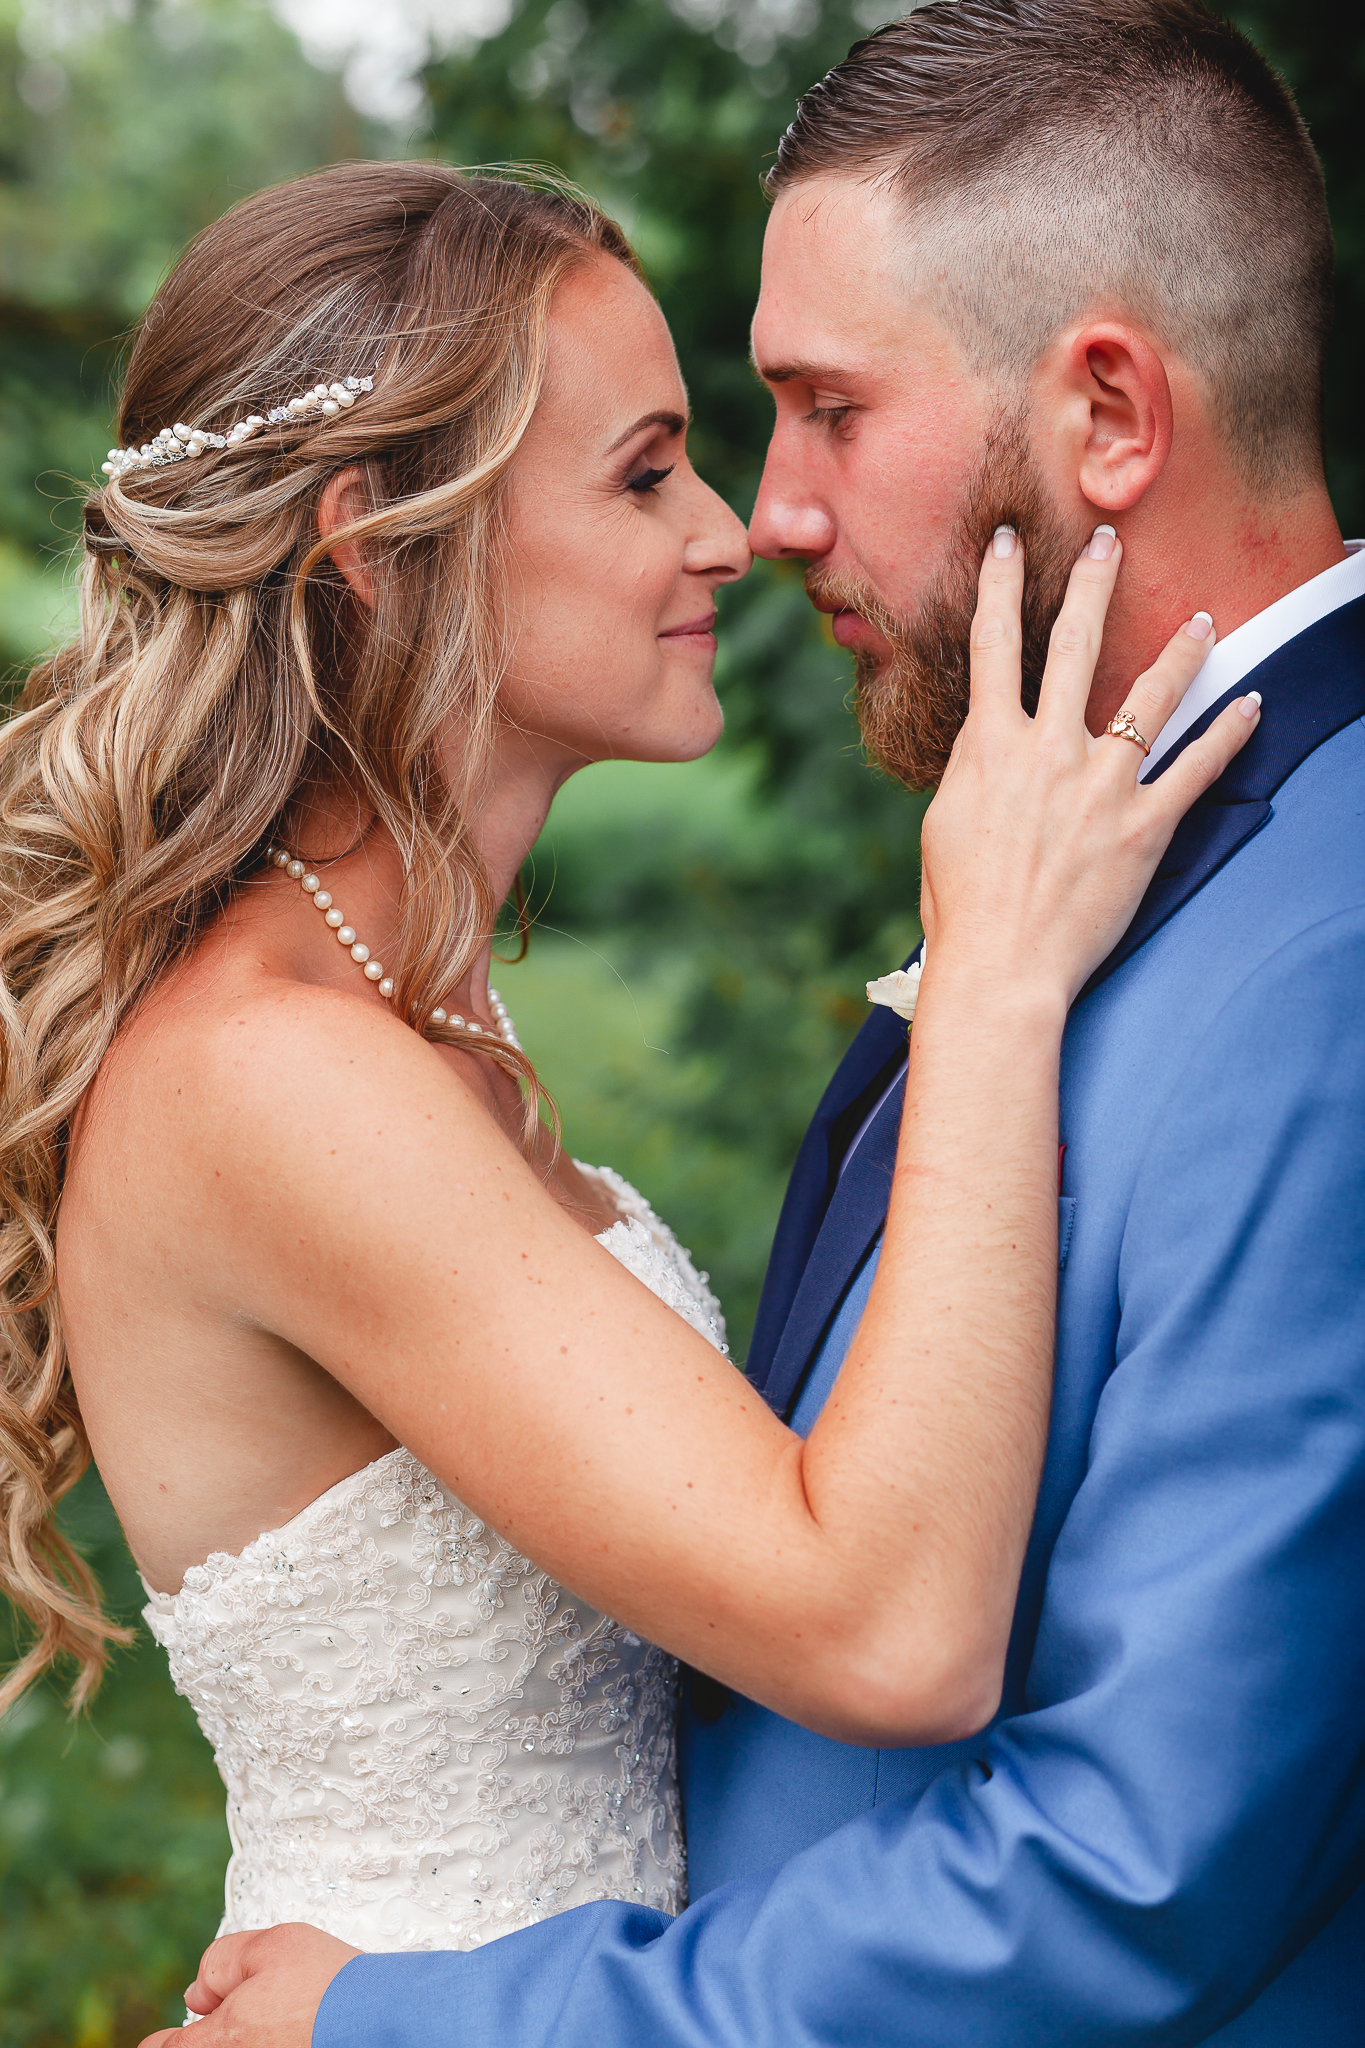 Barrie Wedding Photography- Amy D Photography- Bride and Groom Poses- Snow Valley Wedding- Bride Pose- Groom Pose- Wedding Photography Poses-36.jpg